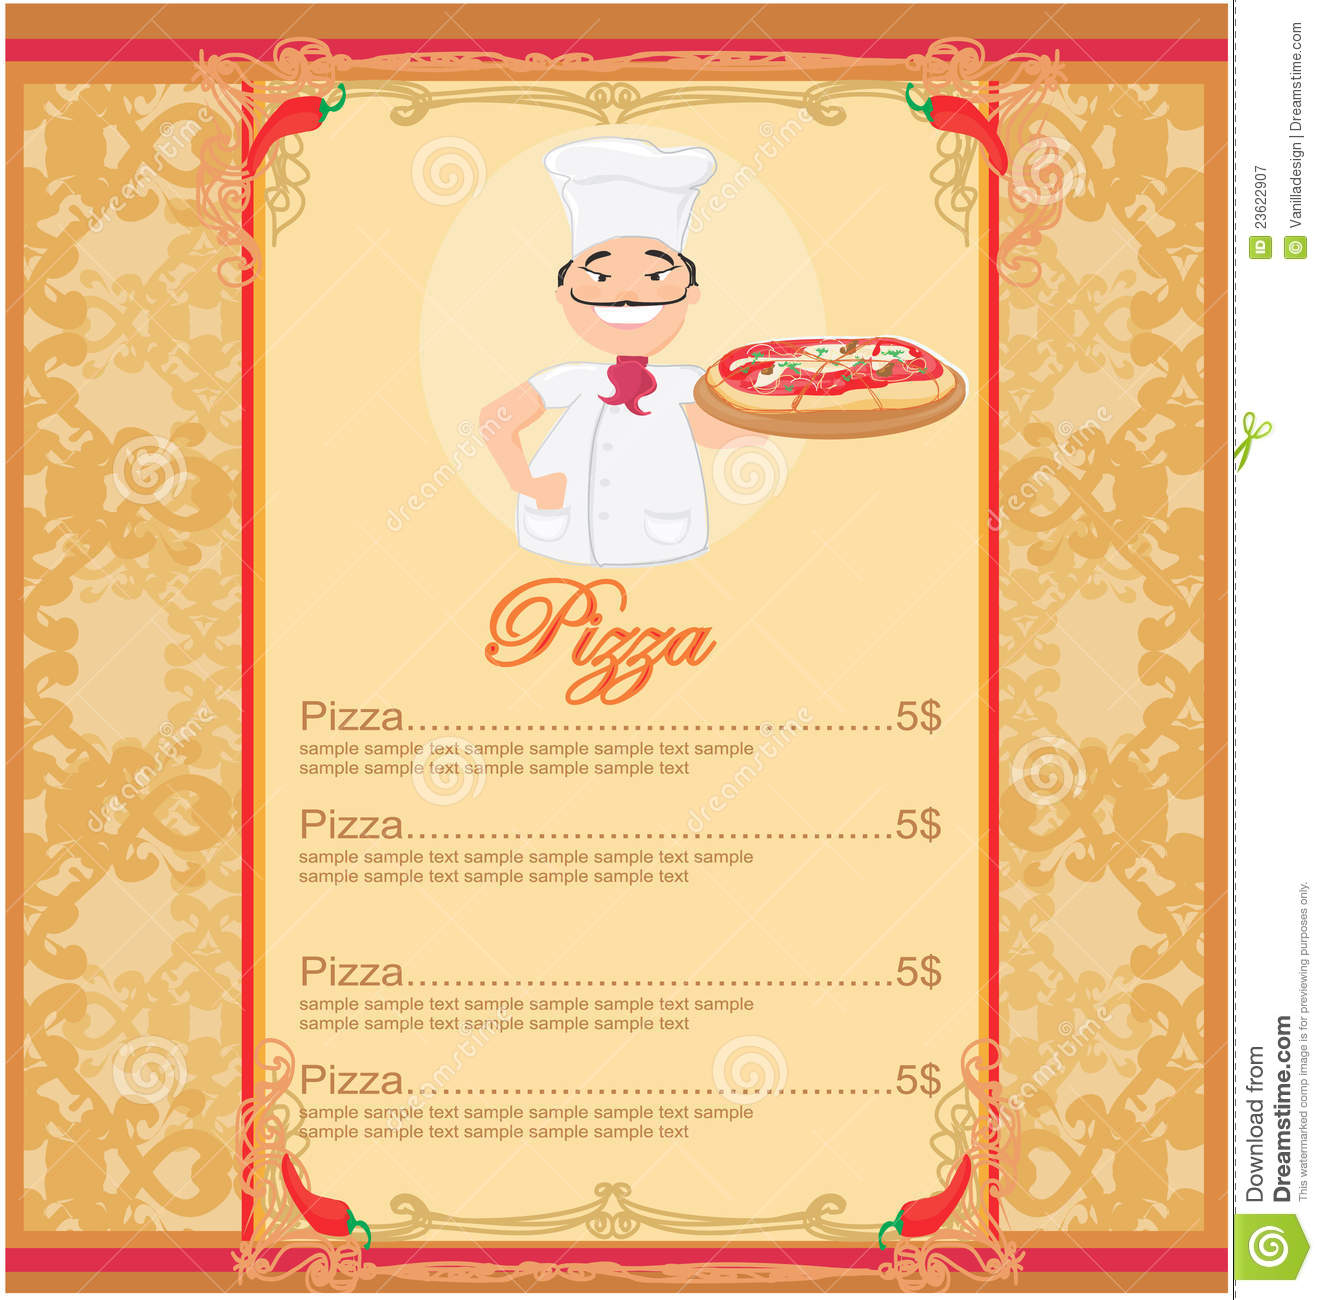 Menu powerpoint template image collections templates example pizza powerpoint template gallery templates example free download special chef menu template cafe attendant sample resume alramifo Gallery